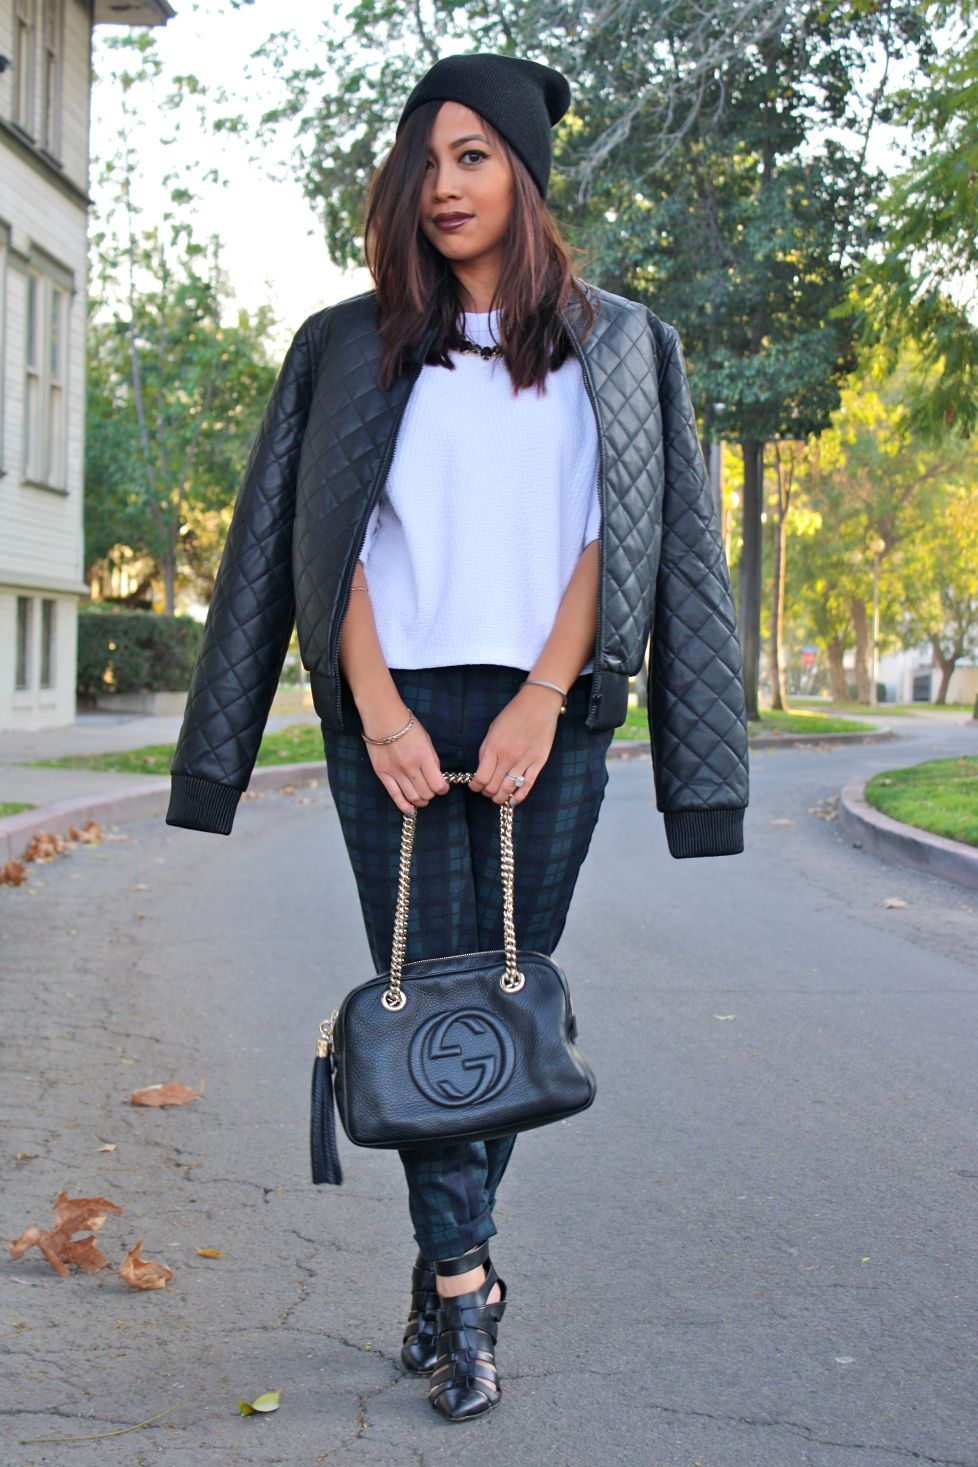 Love the textures in this outfit.